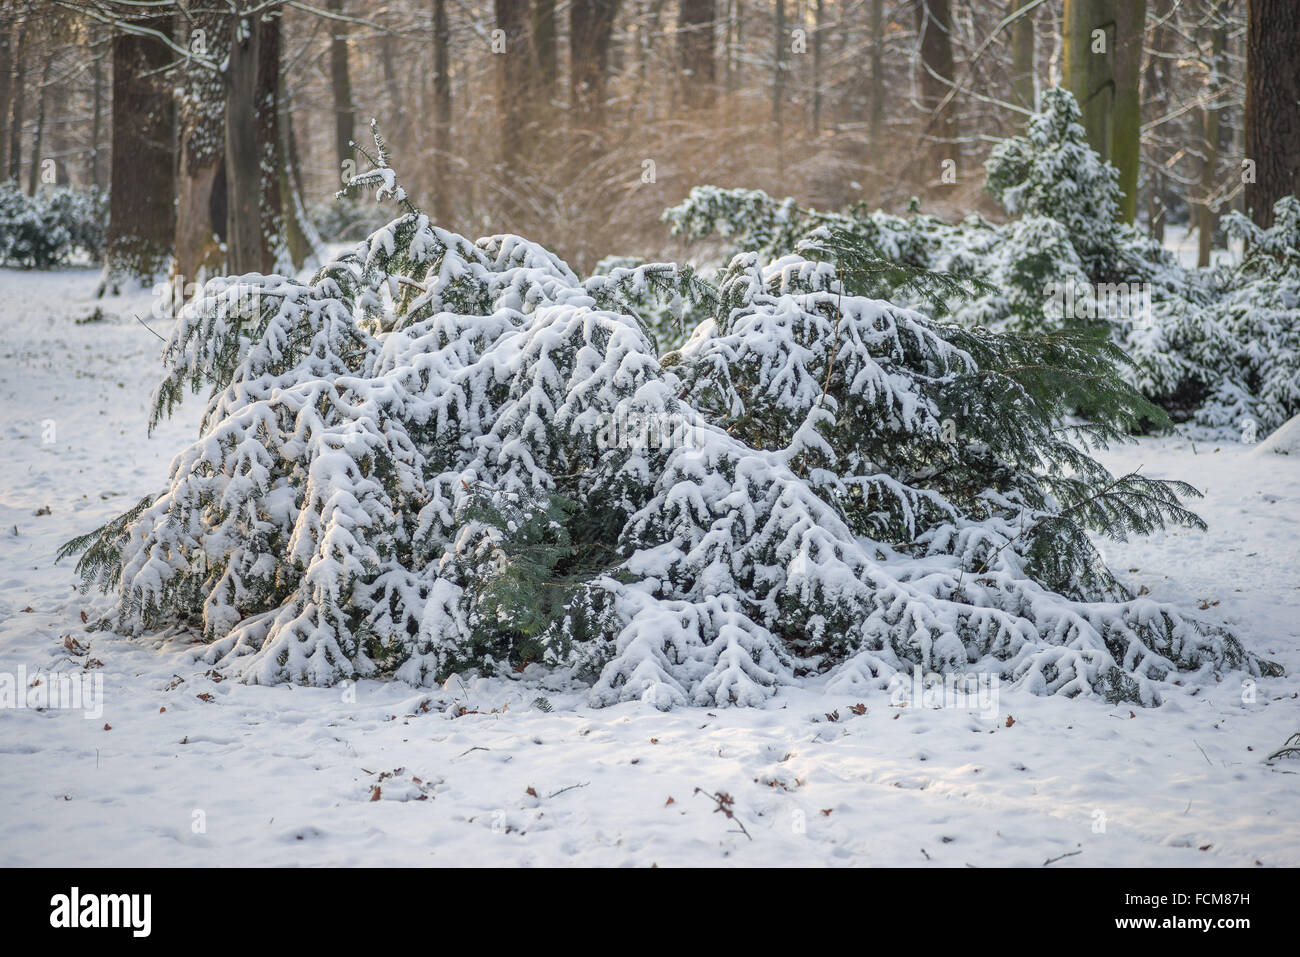 Young yew trees after snowfall - Stock Image